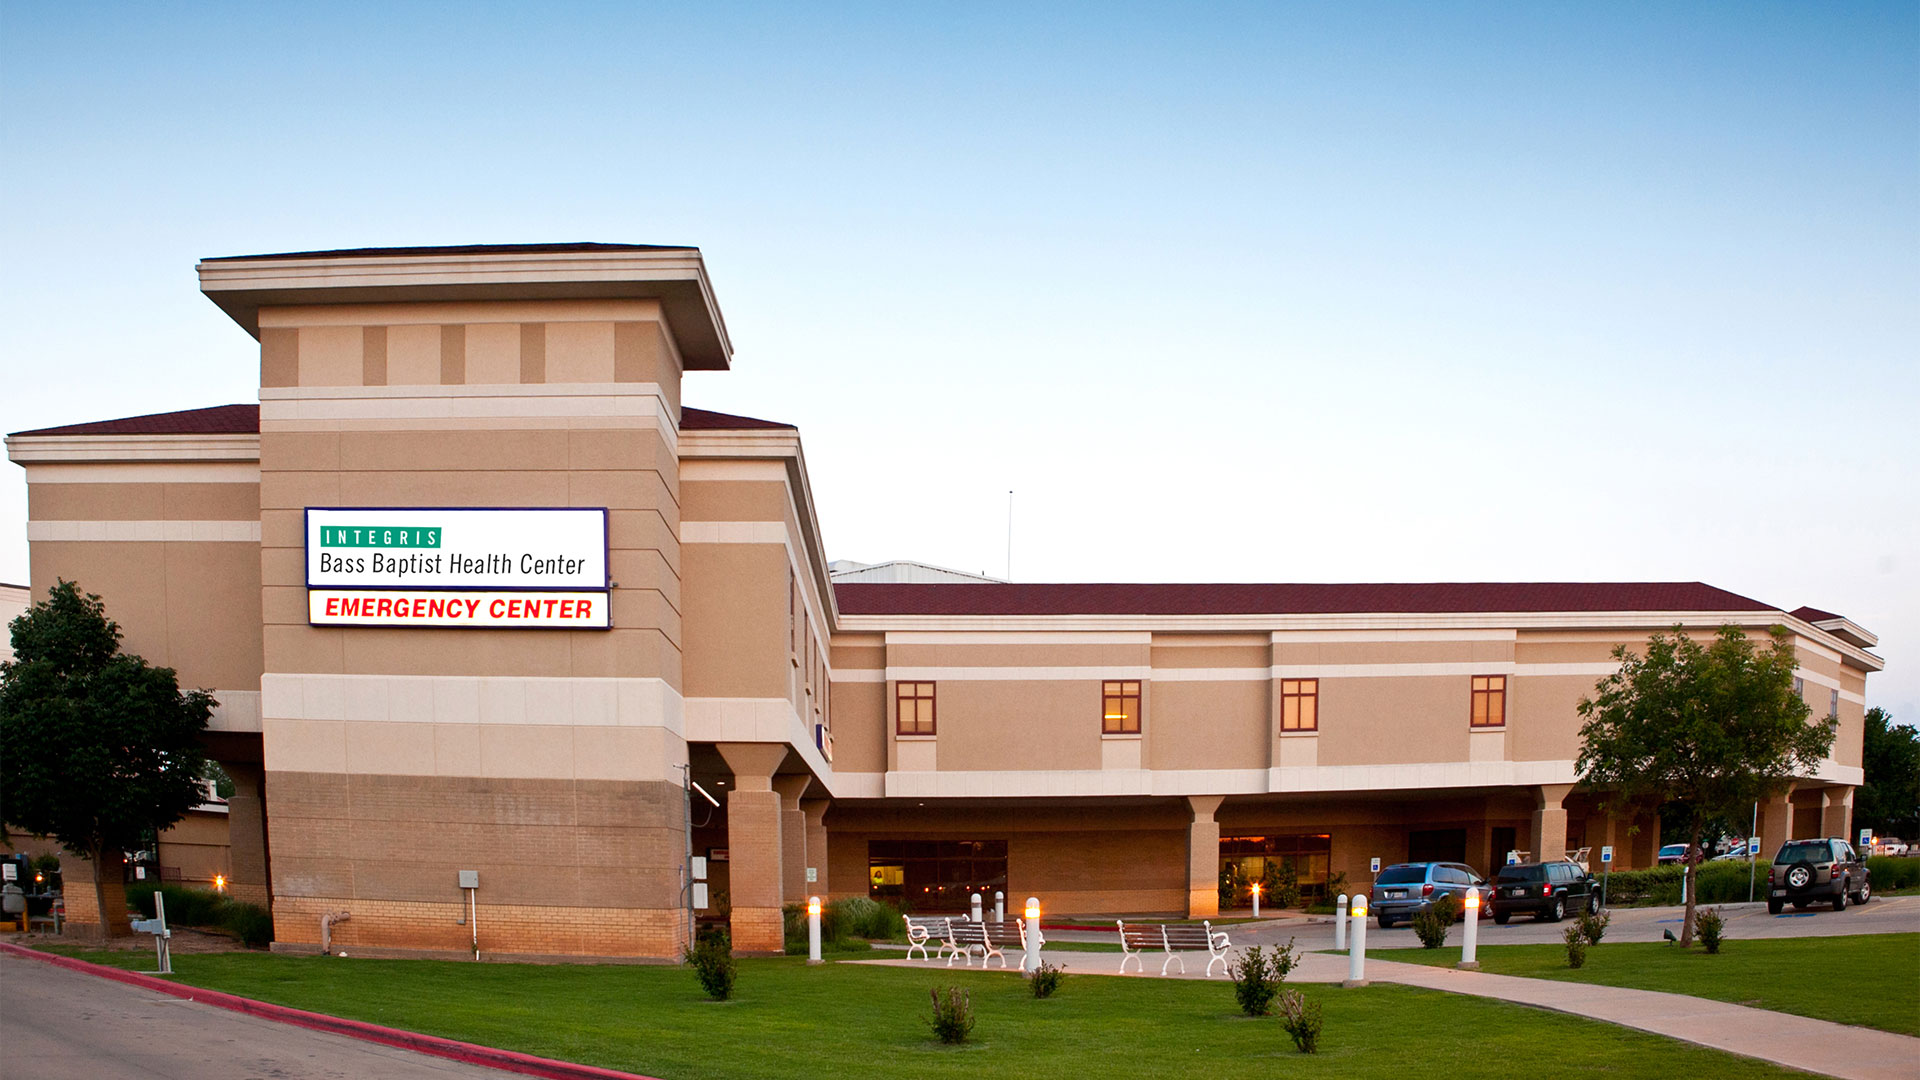 Emergency Room in Enid Oklahoma at Bass Baptist Health